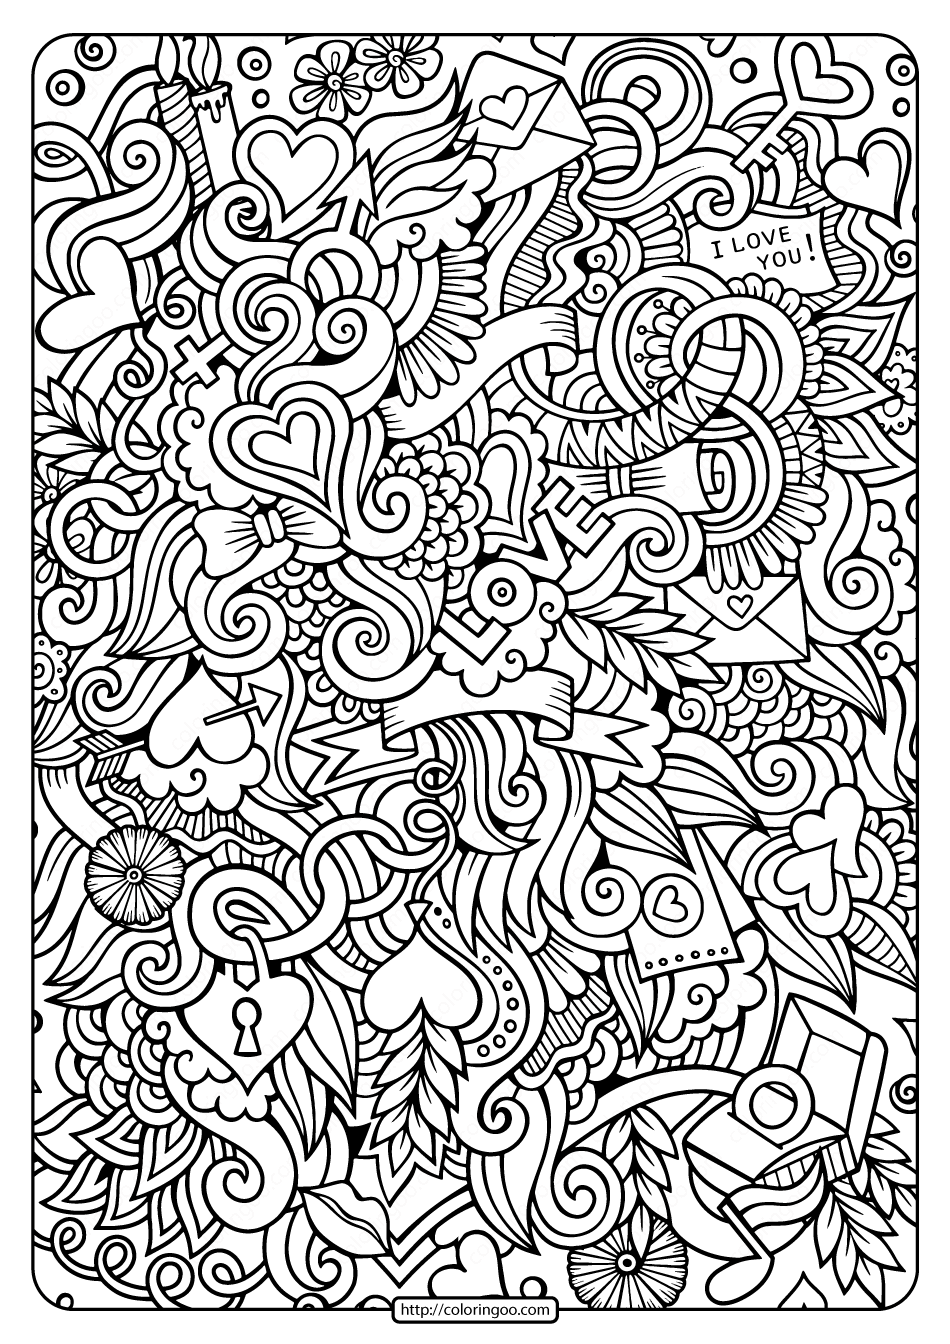 coloring love love coloring poster illustrated children39s ministry love coloring